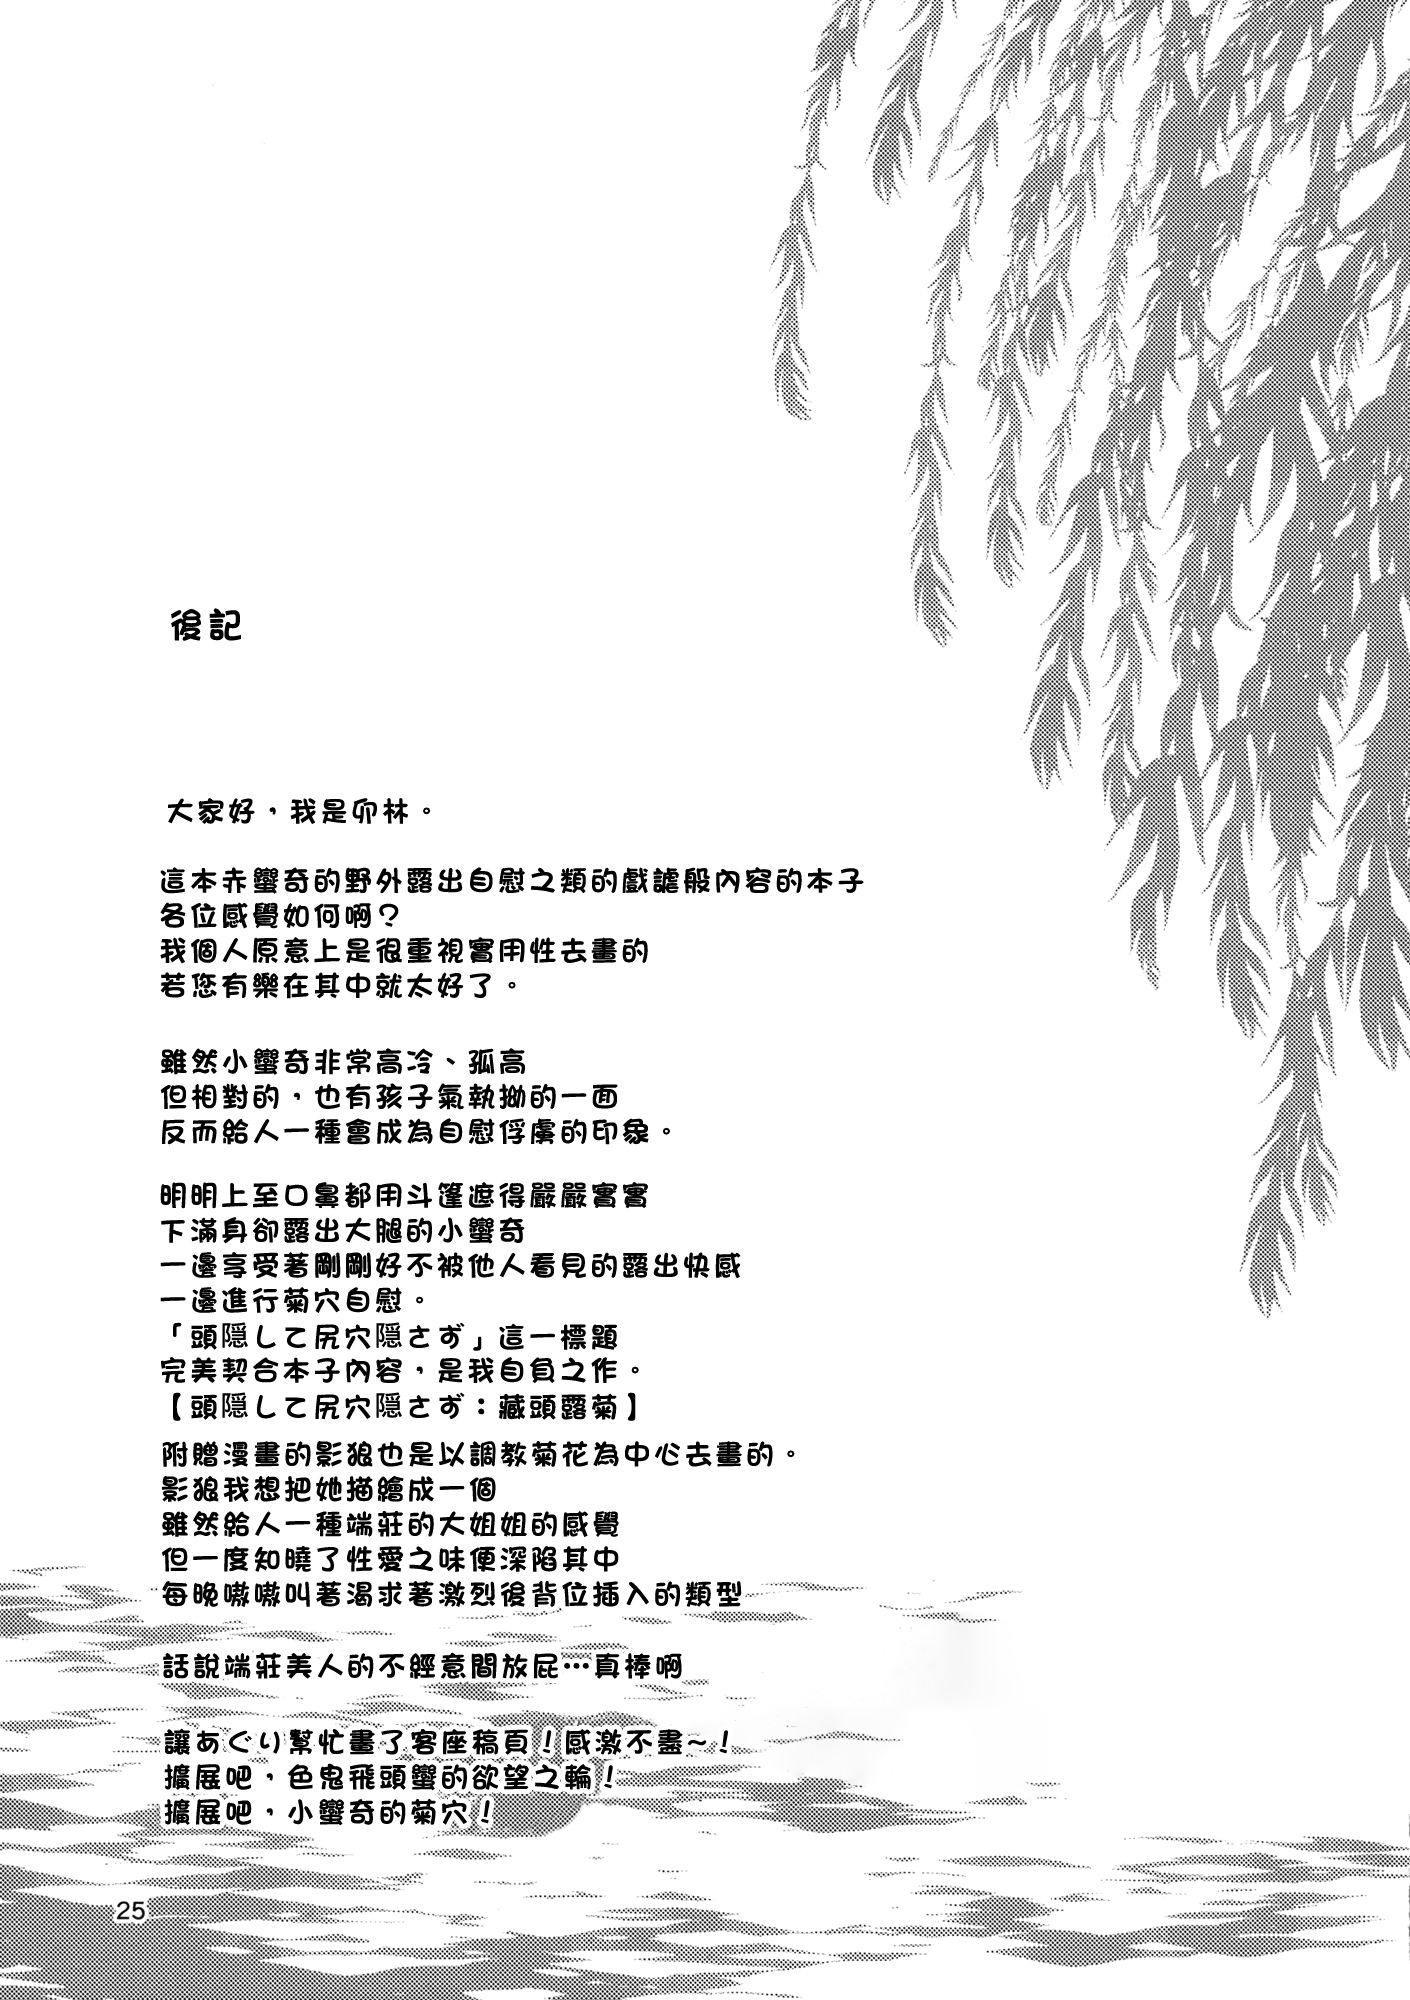 SGTG_126_025.png